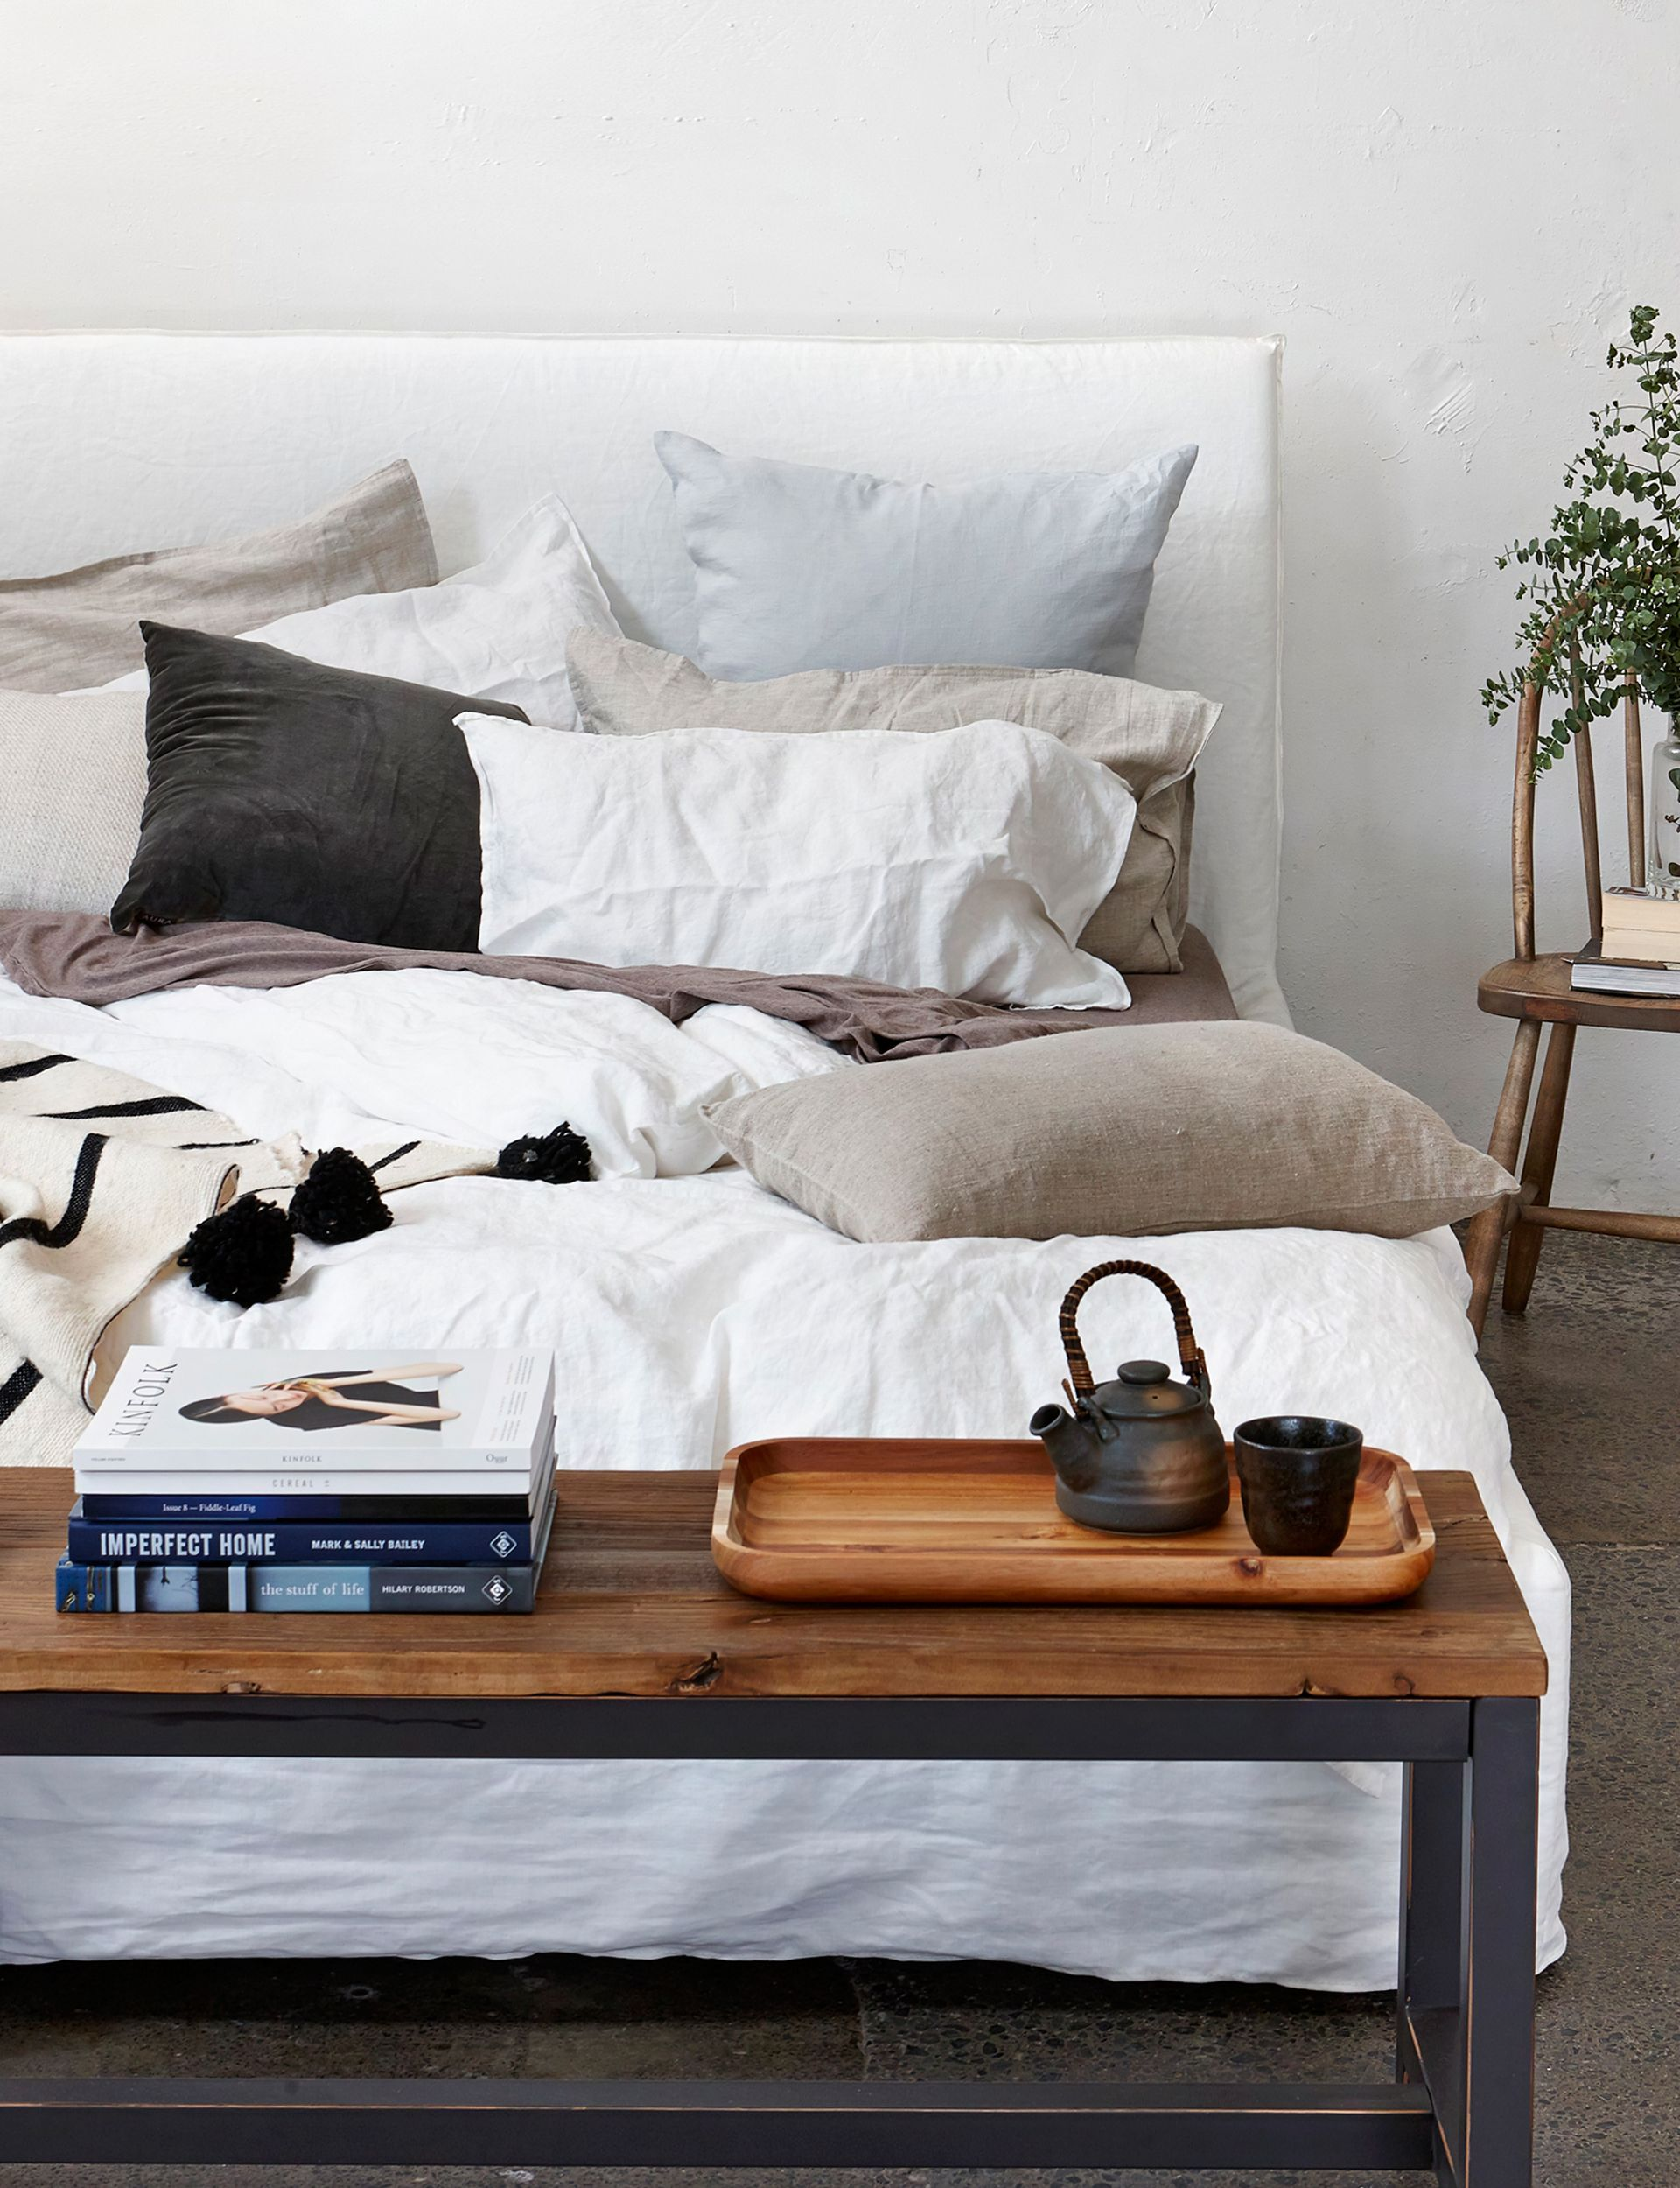 How To Wash Linen Sheets End Of Bed Seating Home Bedroom End